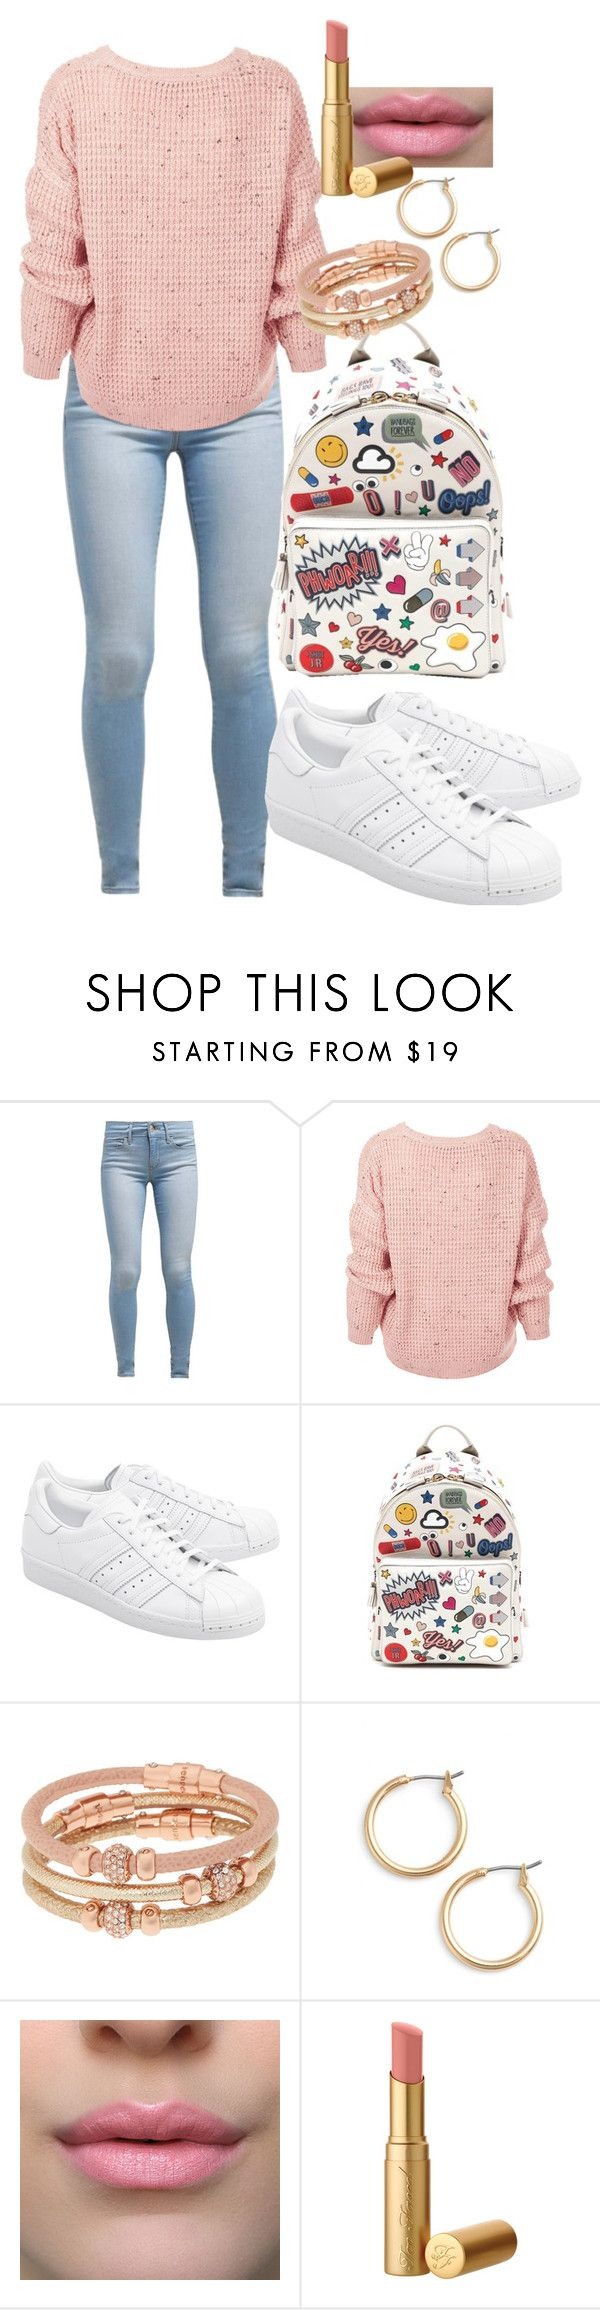 """Untitled #462"" by dreamer3108 on Polyvore featuring Levi's, Topshop, adidas Originals, Anya Hindmarch, Henri Bendel and Nordstrom"